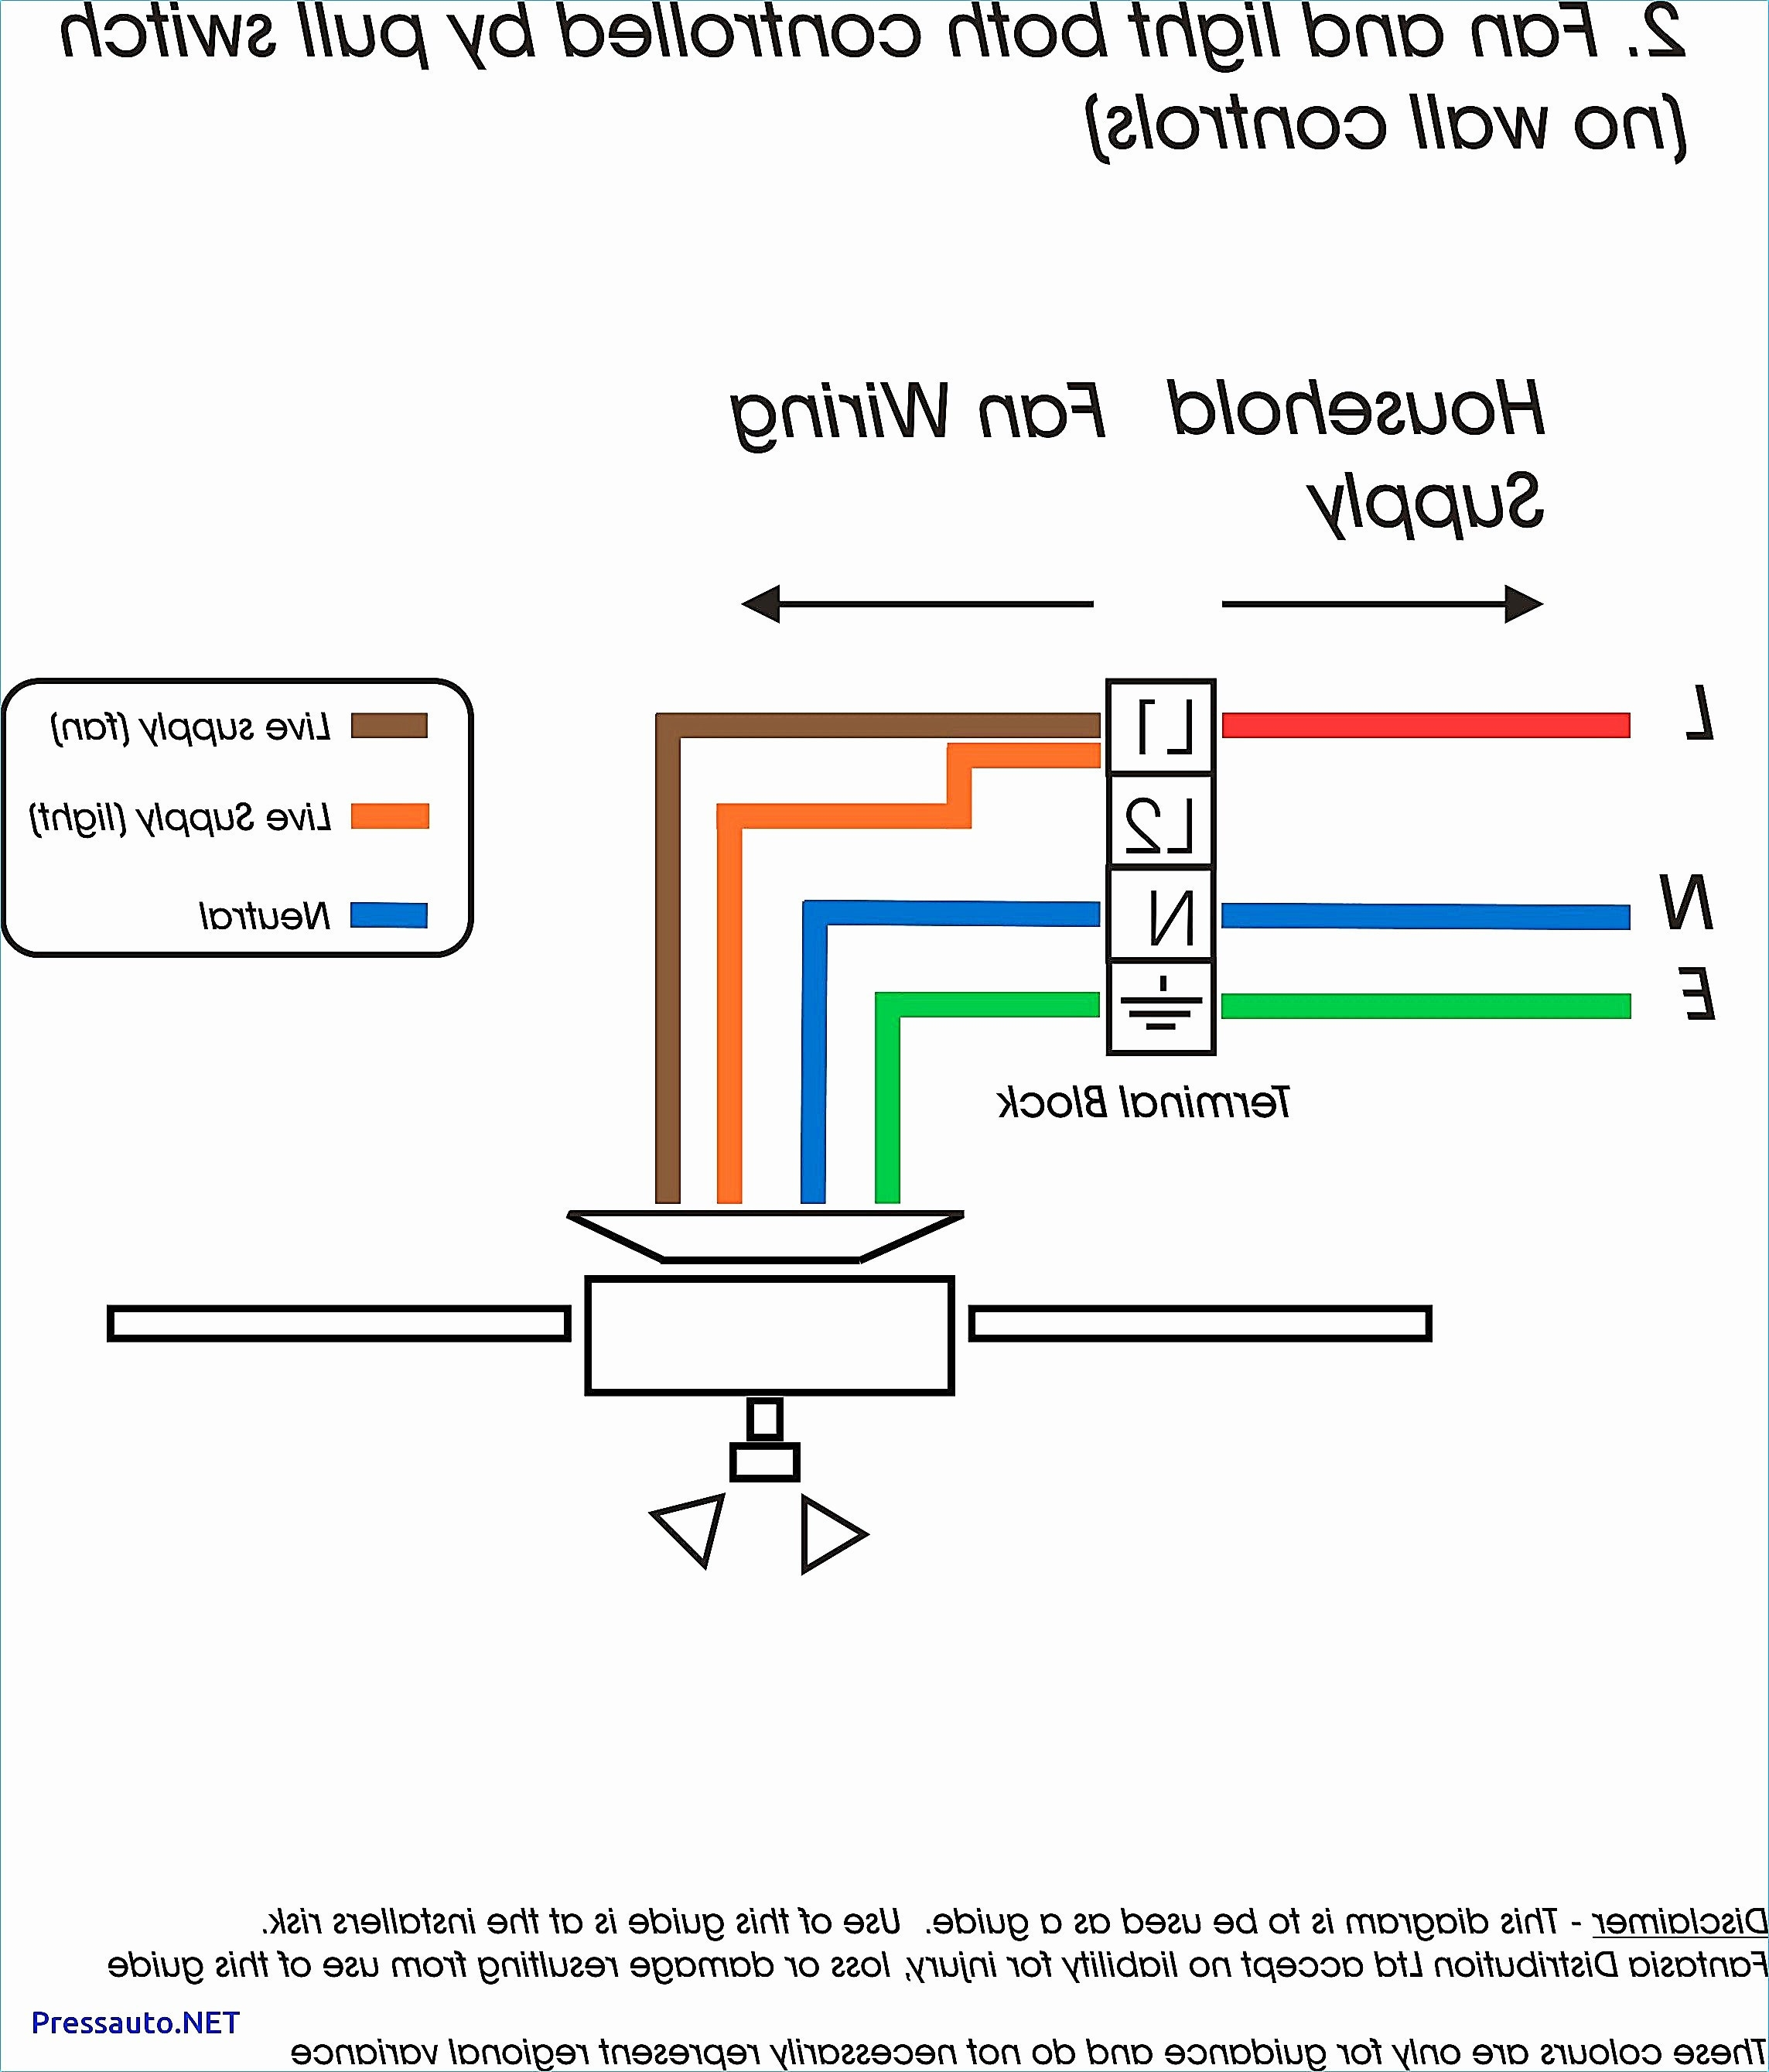 electric awning wiring diagram Download-Installation Wiring Diagram Motorcycle Alarm System Best Wiring Diy solar Panel Wiring Diagram Lovely Diy 16-m